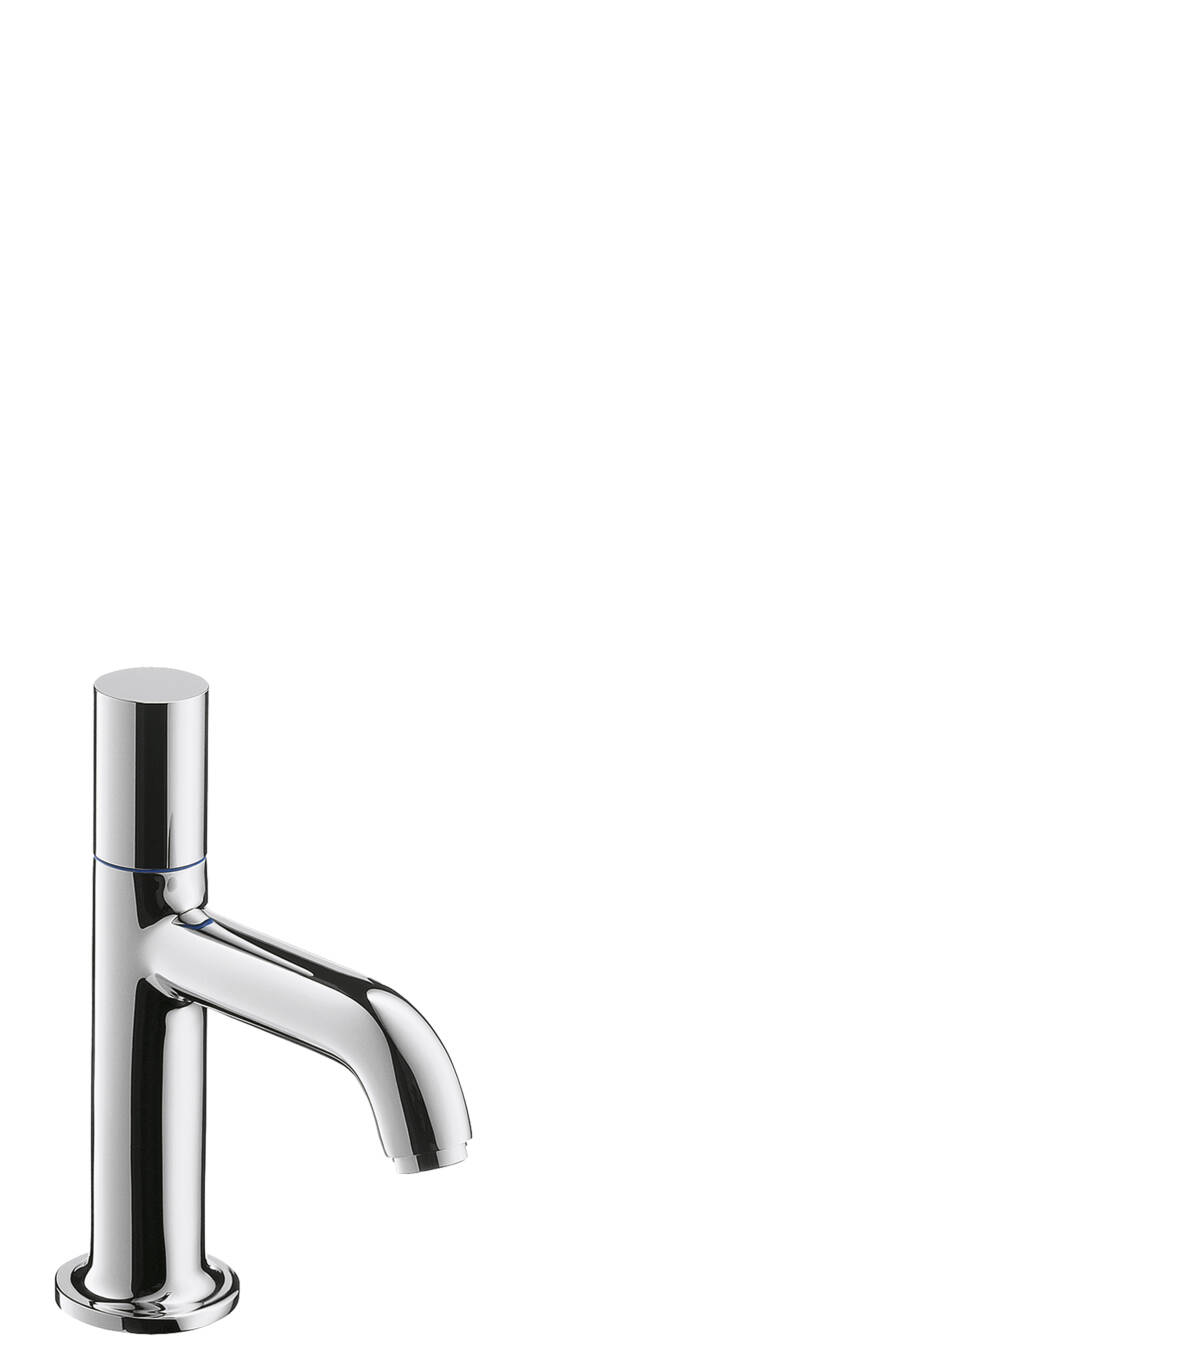 axor uno washbasin mixers brushed black chrome 38130340. Black Bedroom Furniture Sets. Home Design Ideas